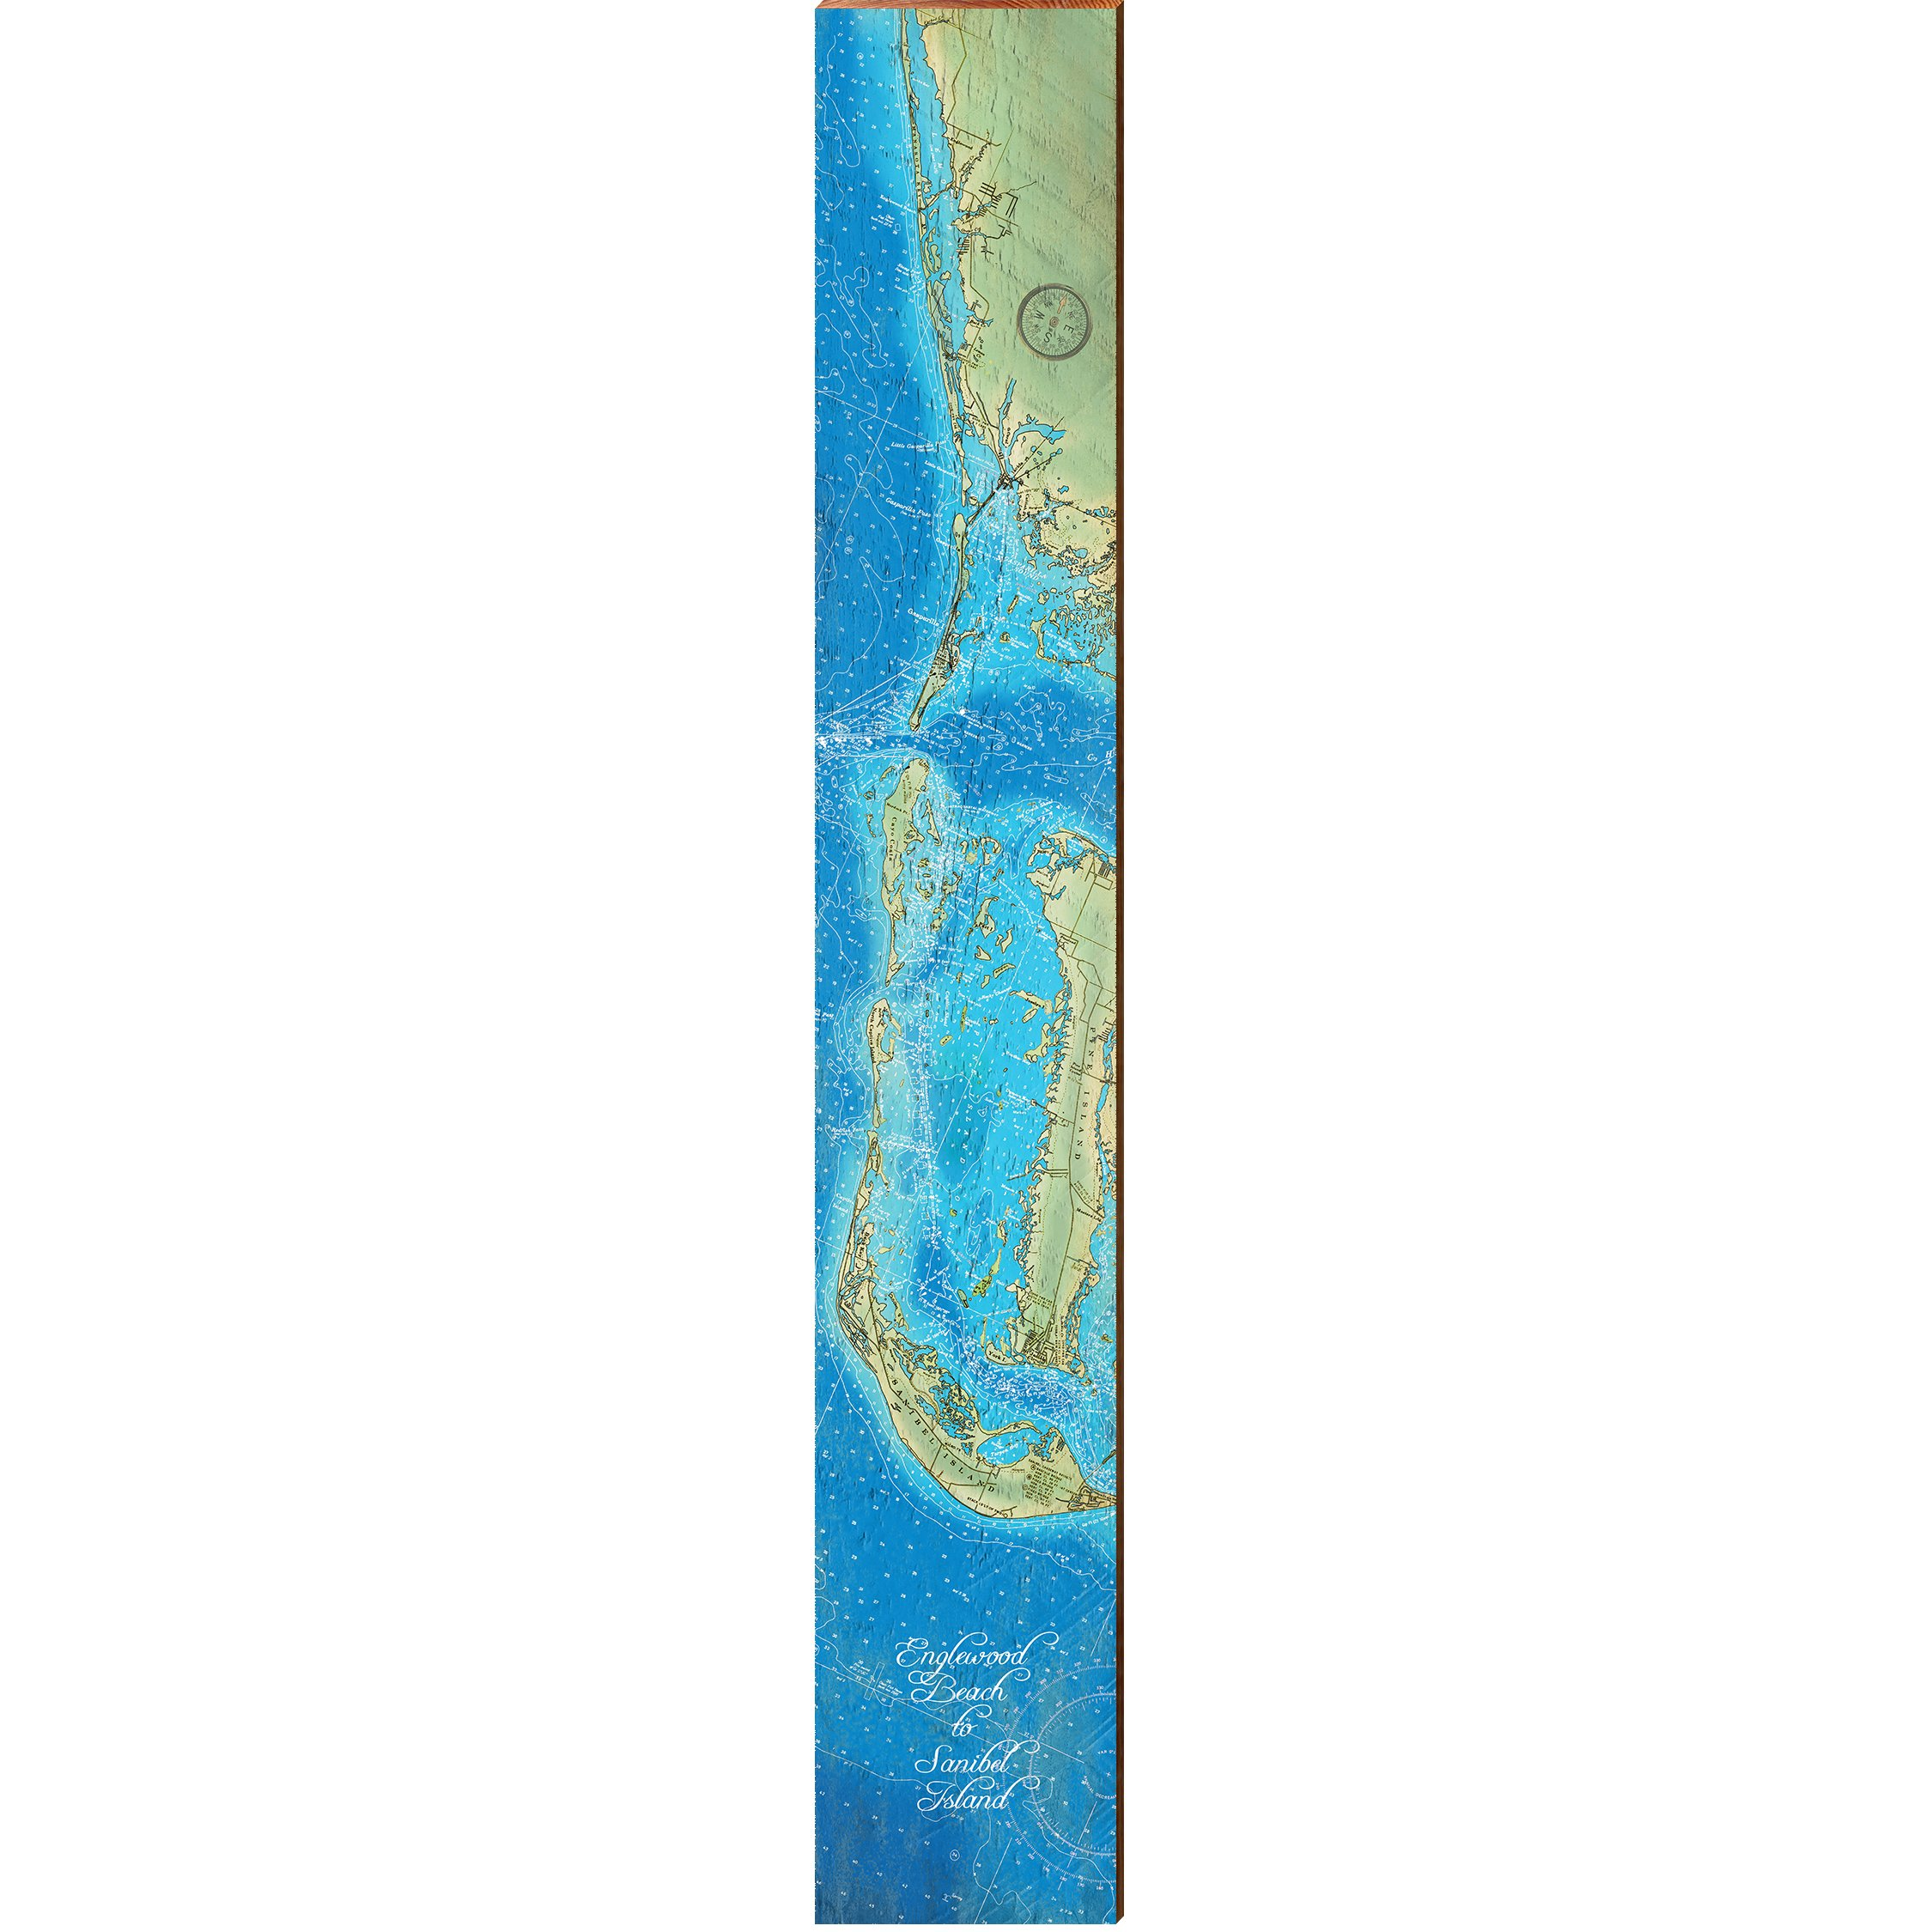 Boutsy > Mill Wood Art > MILL WOOD ART Englewood Beach to ...